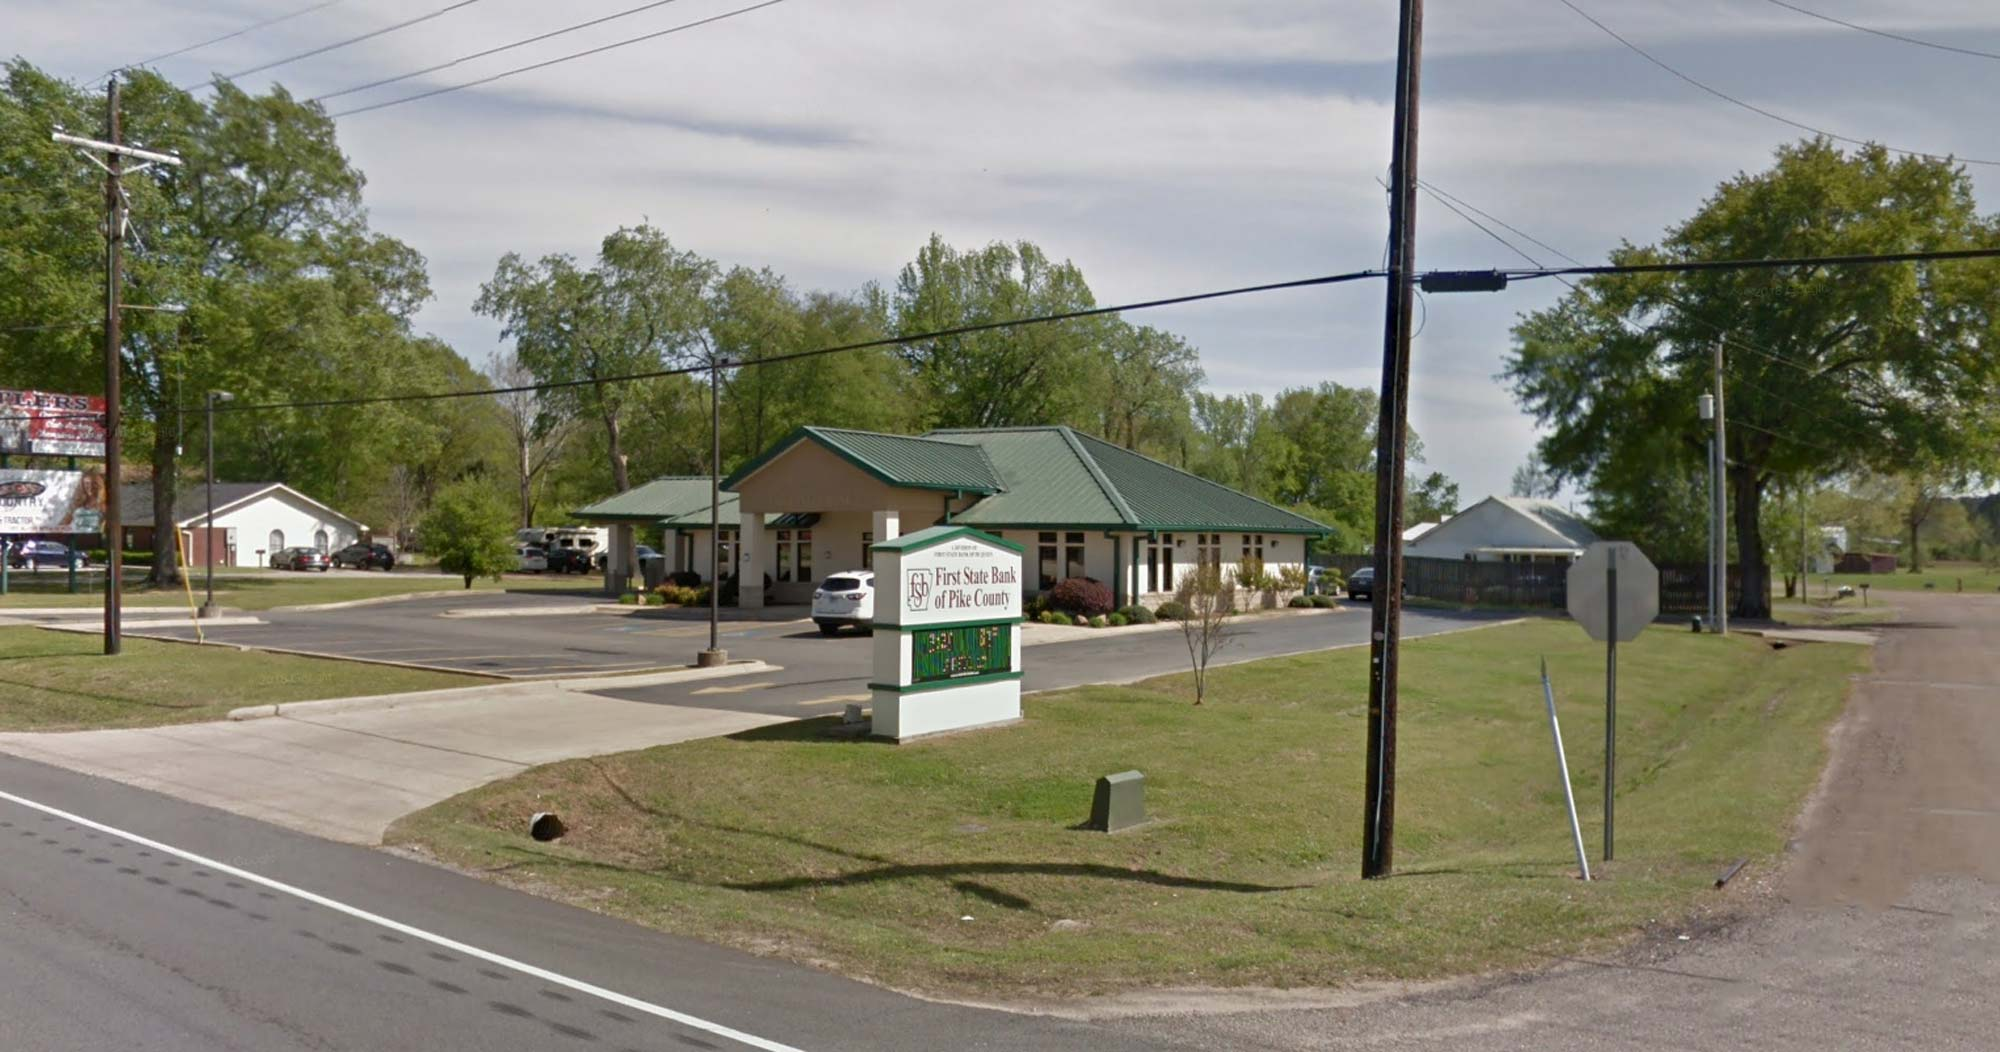 First State Bank of Pike County